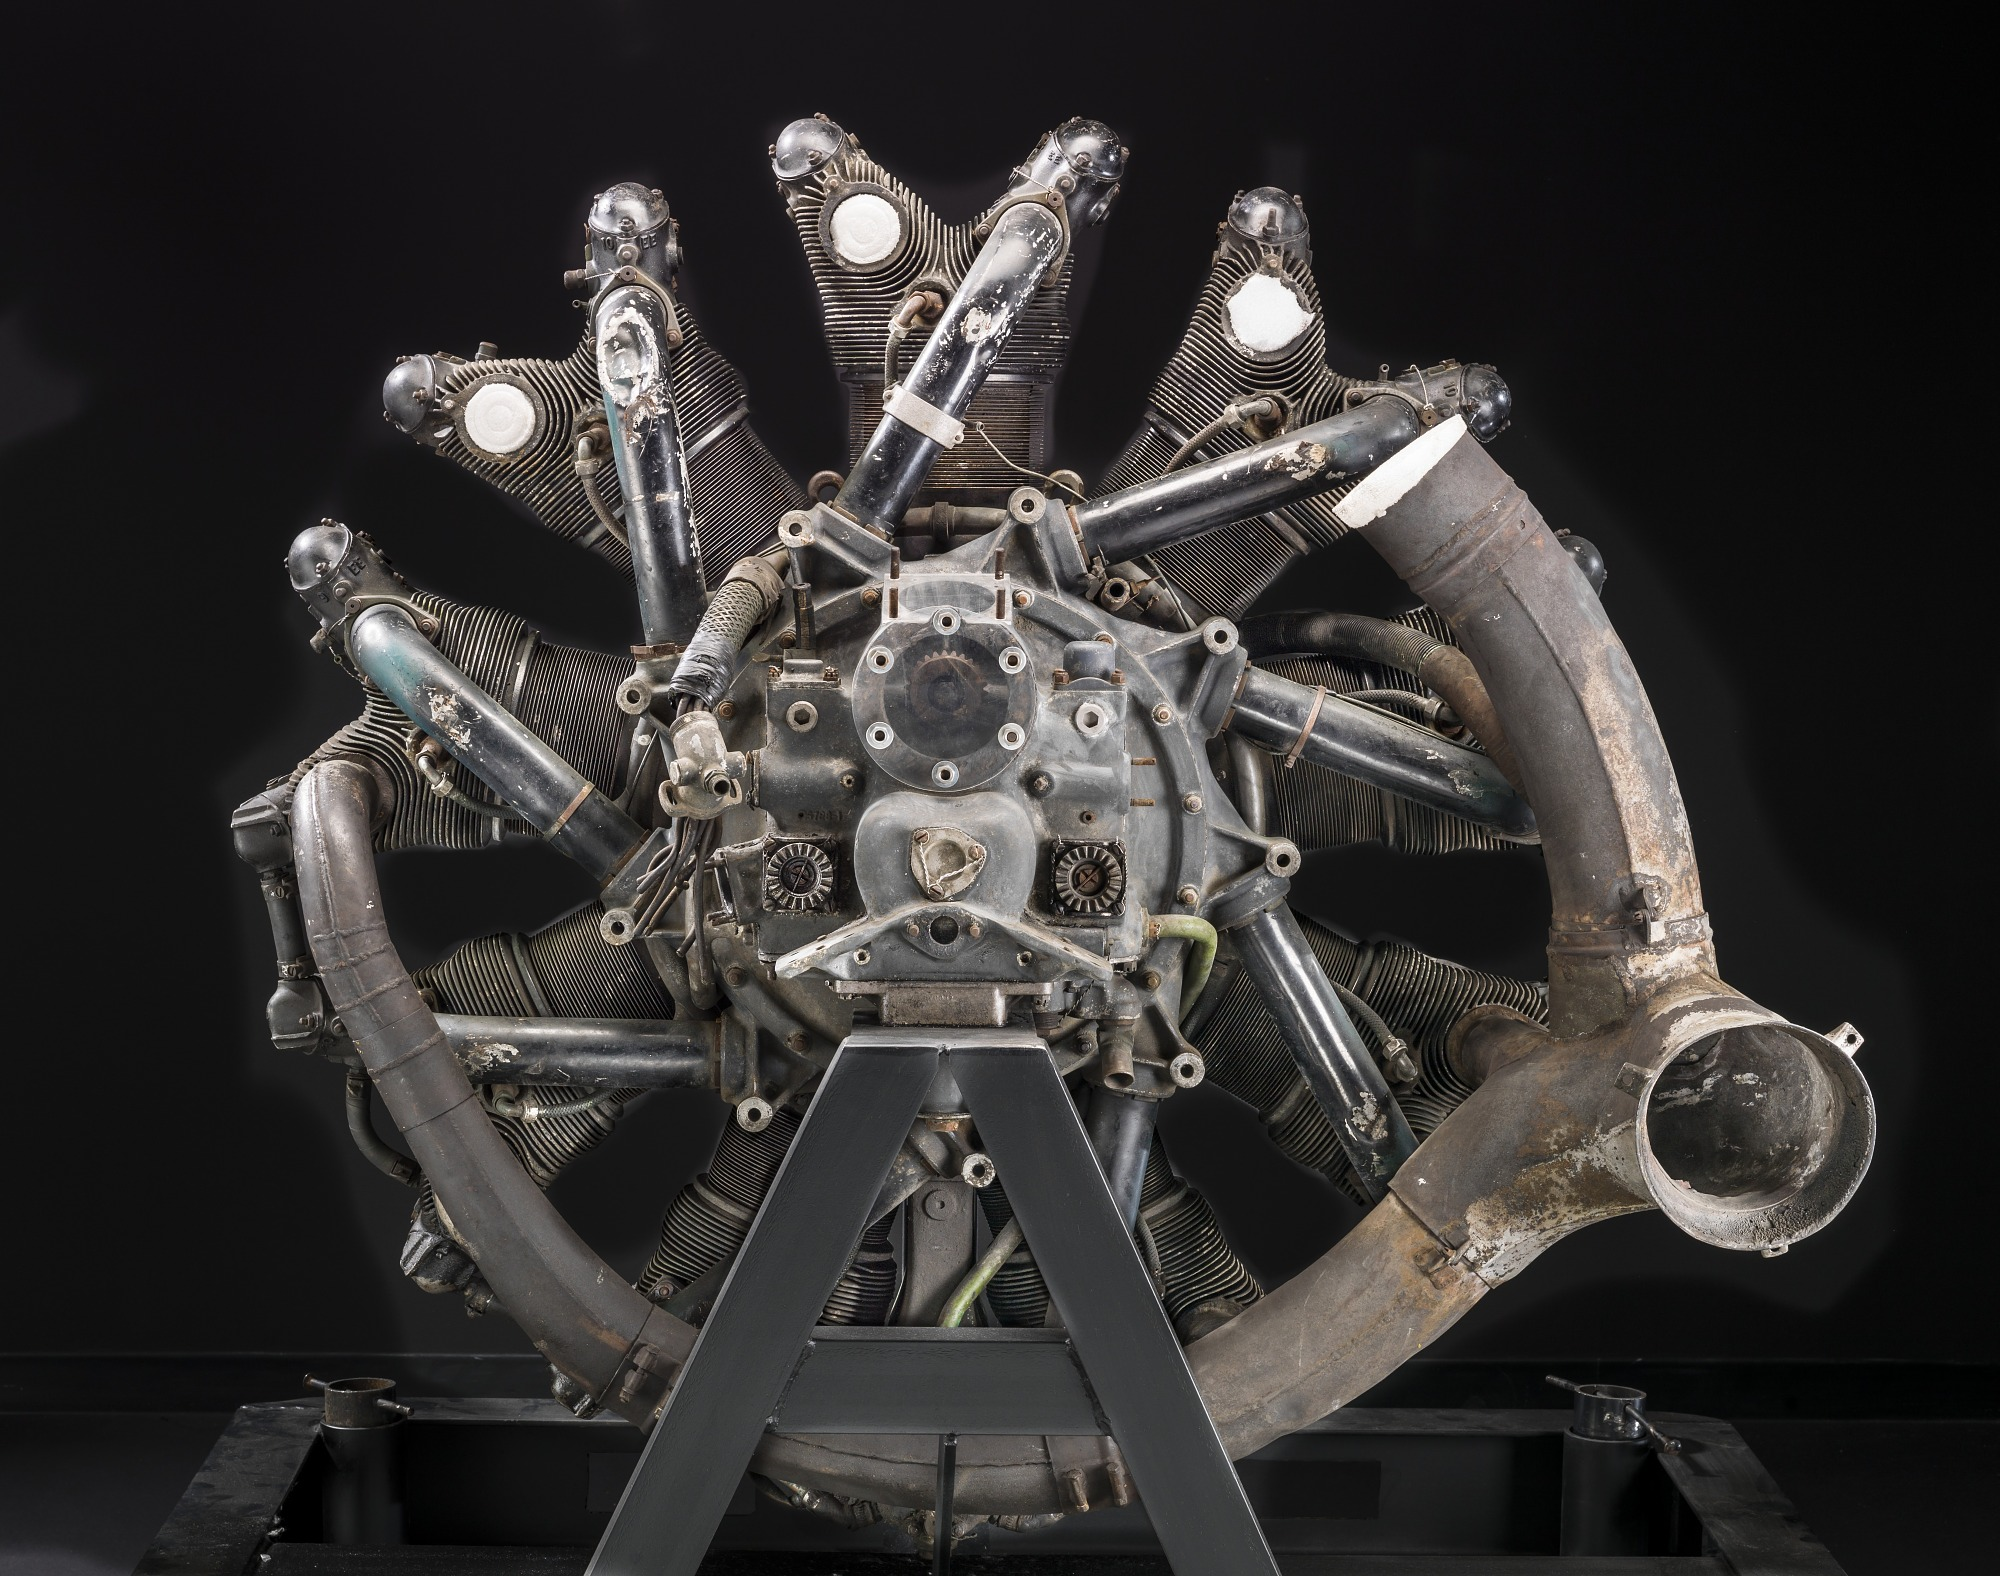 Pratt & Whitney Wasp R-1340 SC1, Radial 9 Engine